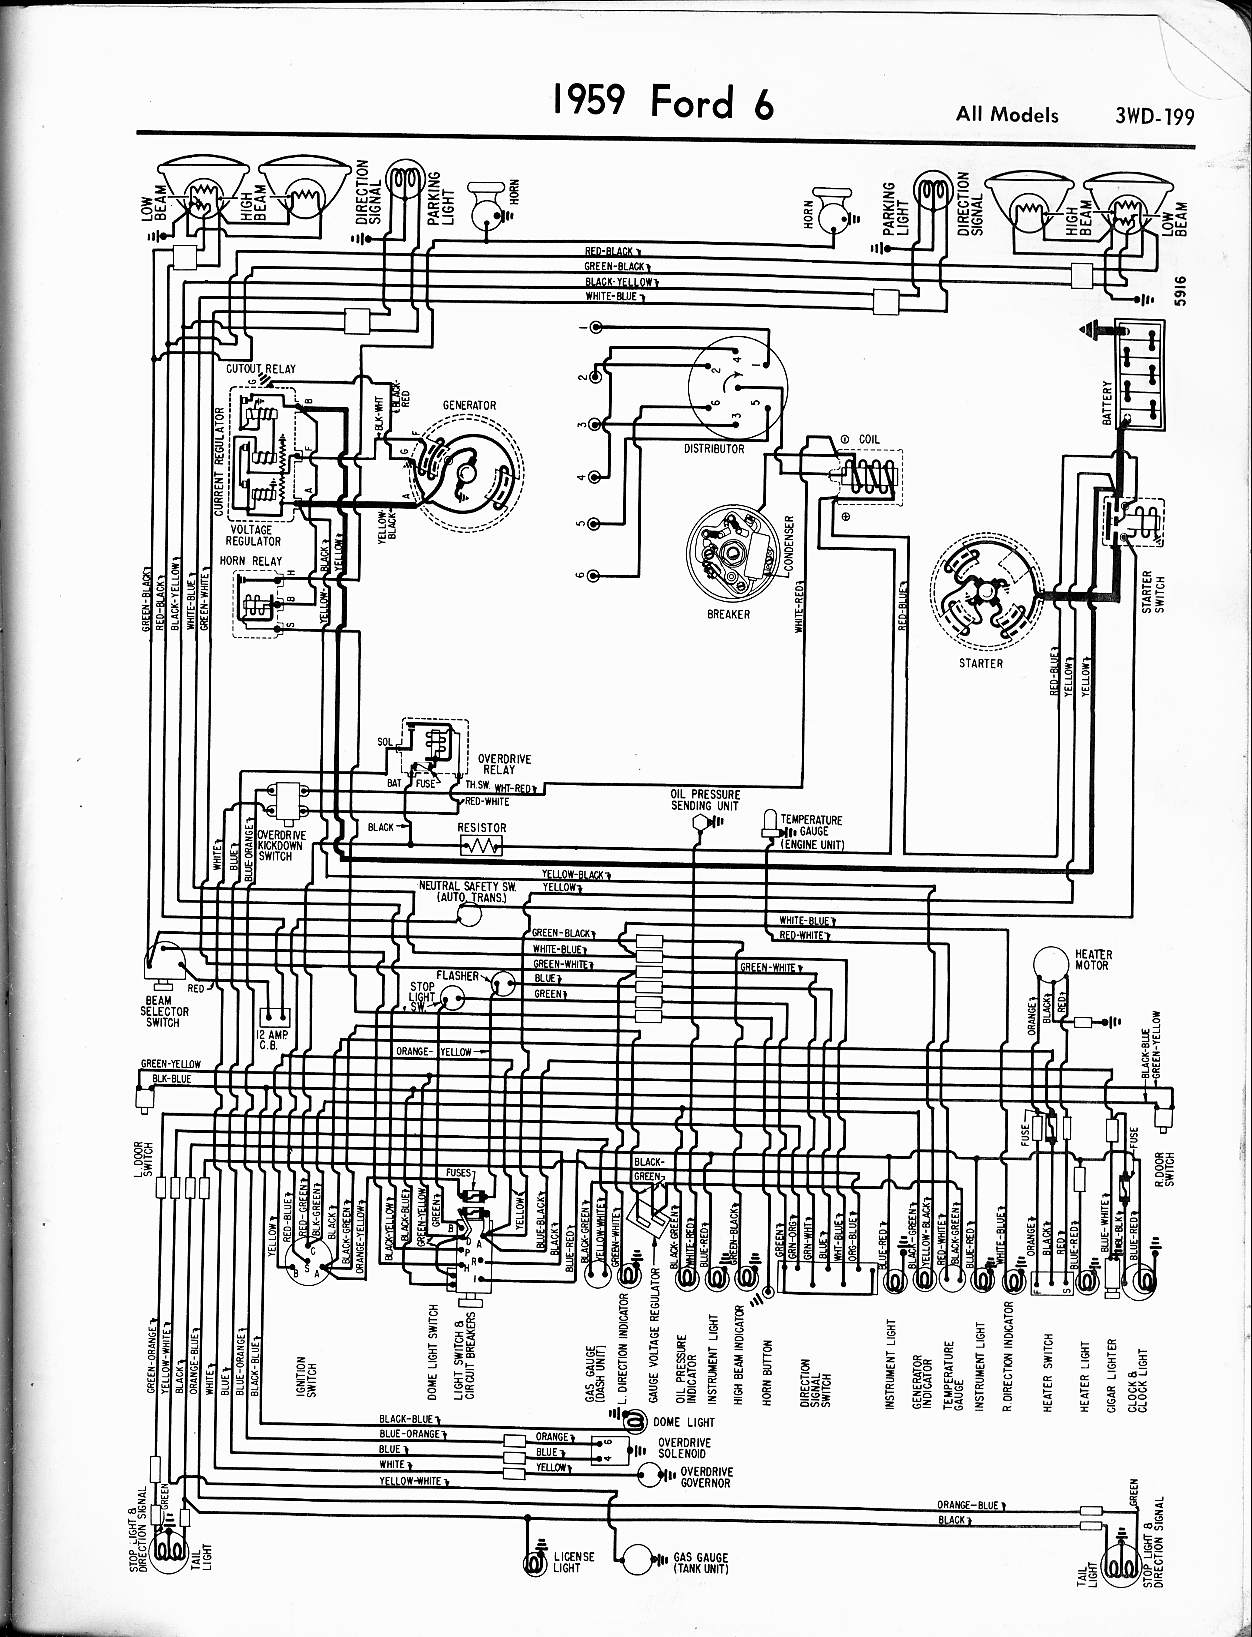 1959 f100 column wiring diagram rh justanswer com Dodge Ram 2500 Wiring Diagram  Chrysler Ignition Wiring